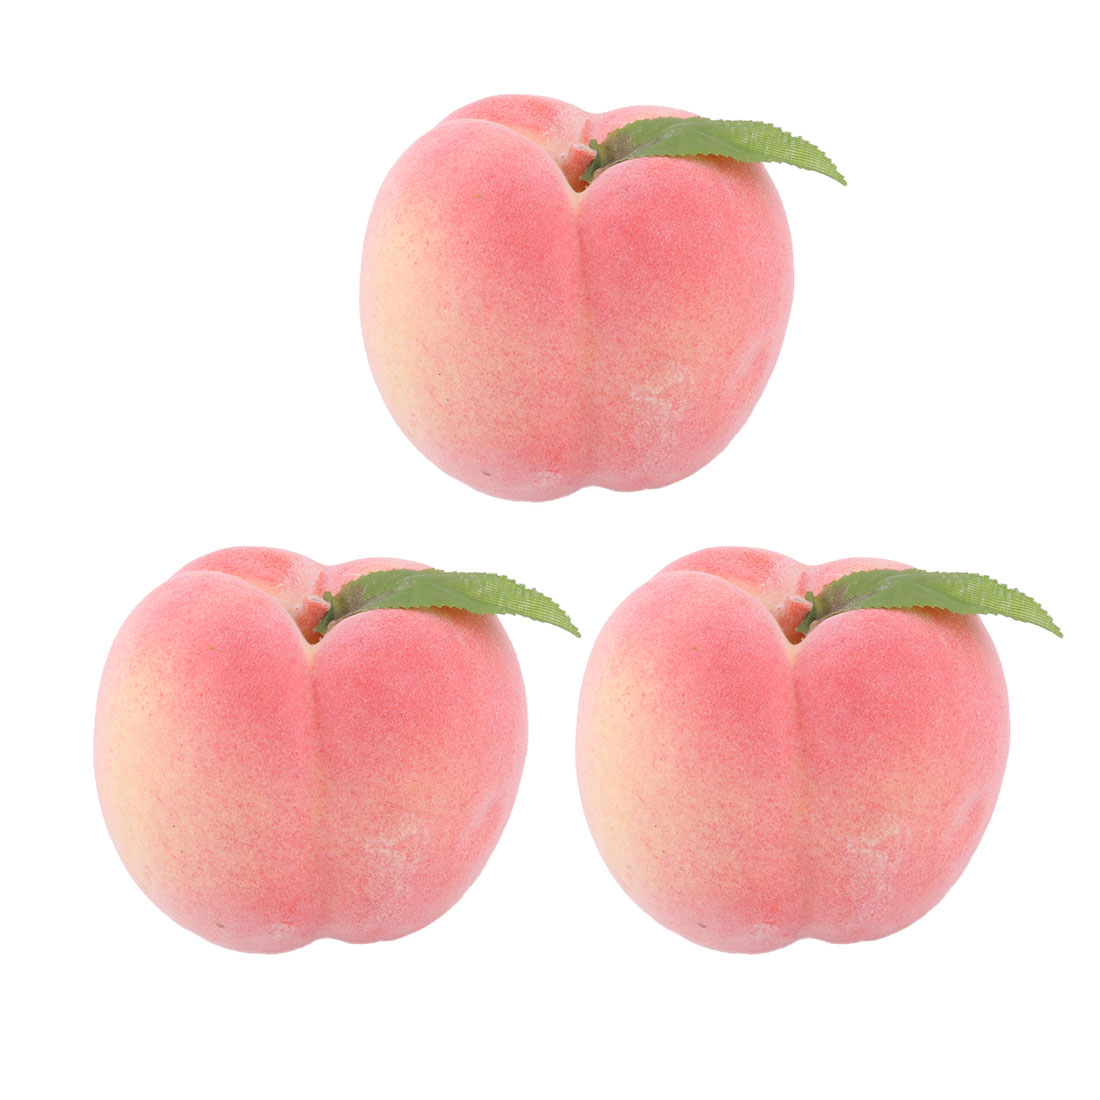 Household Office Decor Foam Lifelike Artificial Emulation Fruit Peach Mold Pink 3pcs